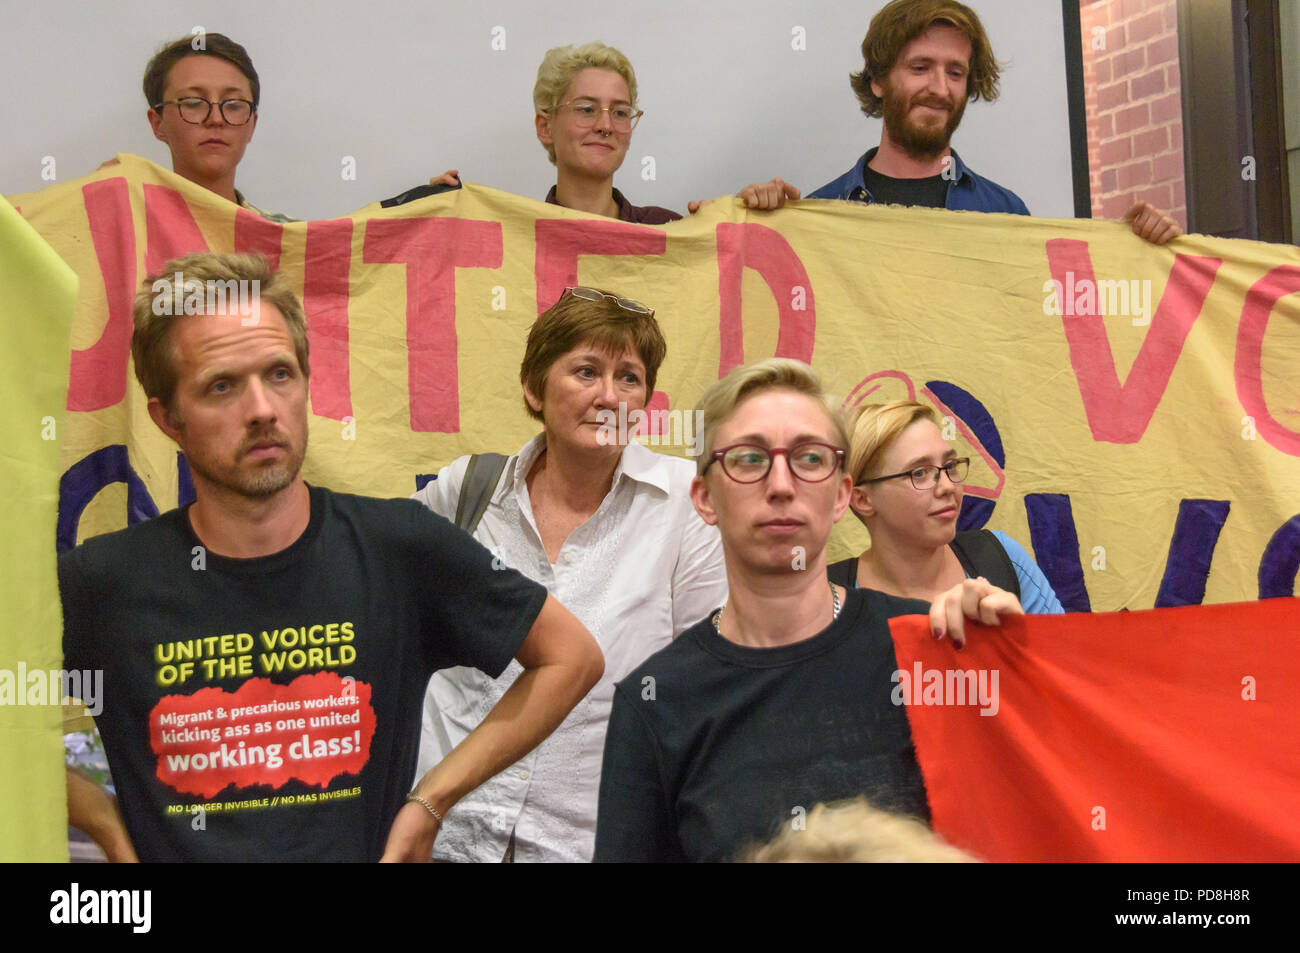 London, UK. 7th August 2018.  United Voices of the World trade union members hold banners and listen to the debate after the  Kensington & Chelsea council planning committee public meeting was officially suspended.  The union were angered by the withdrawal of a promise made earlier in the day to bring the cleaners at the council back into direct employment. The meeting was suspended after his statement, with most councillors leaving and there was a short debate where a councillor and several members of the public spoke supporting the cleaners; the protesters left after Councillor Catherine FauStock Photo